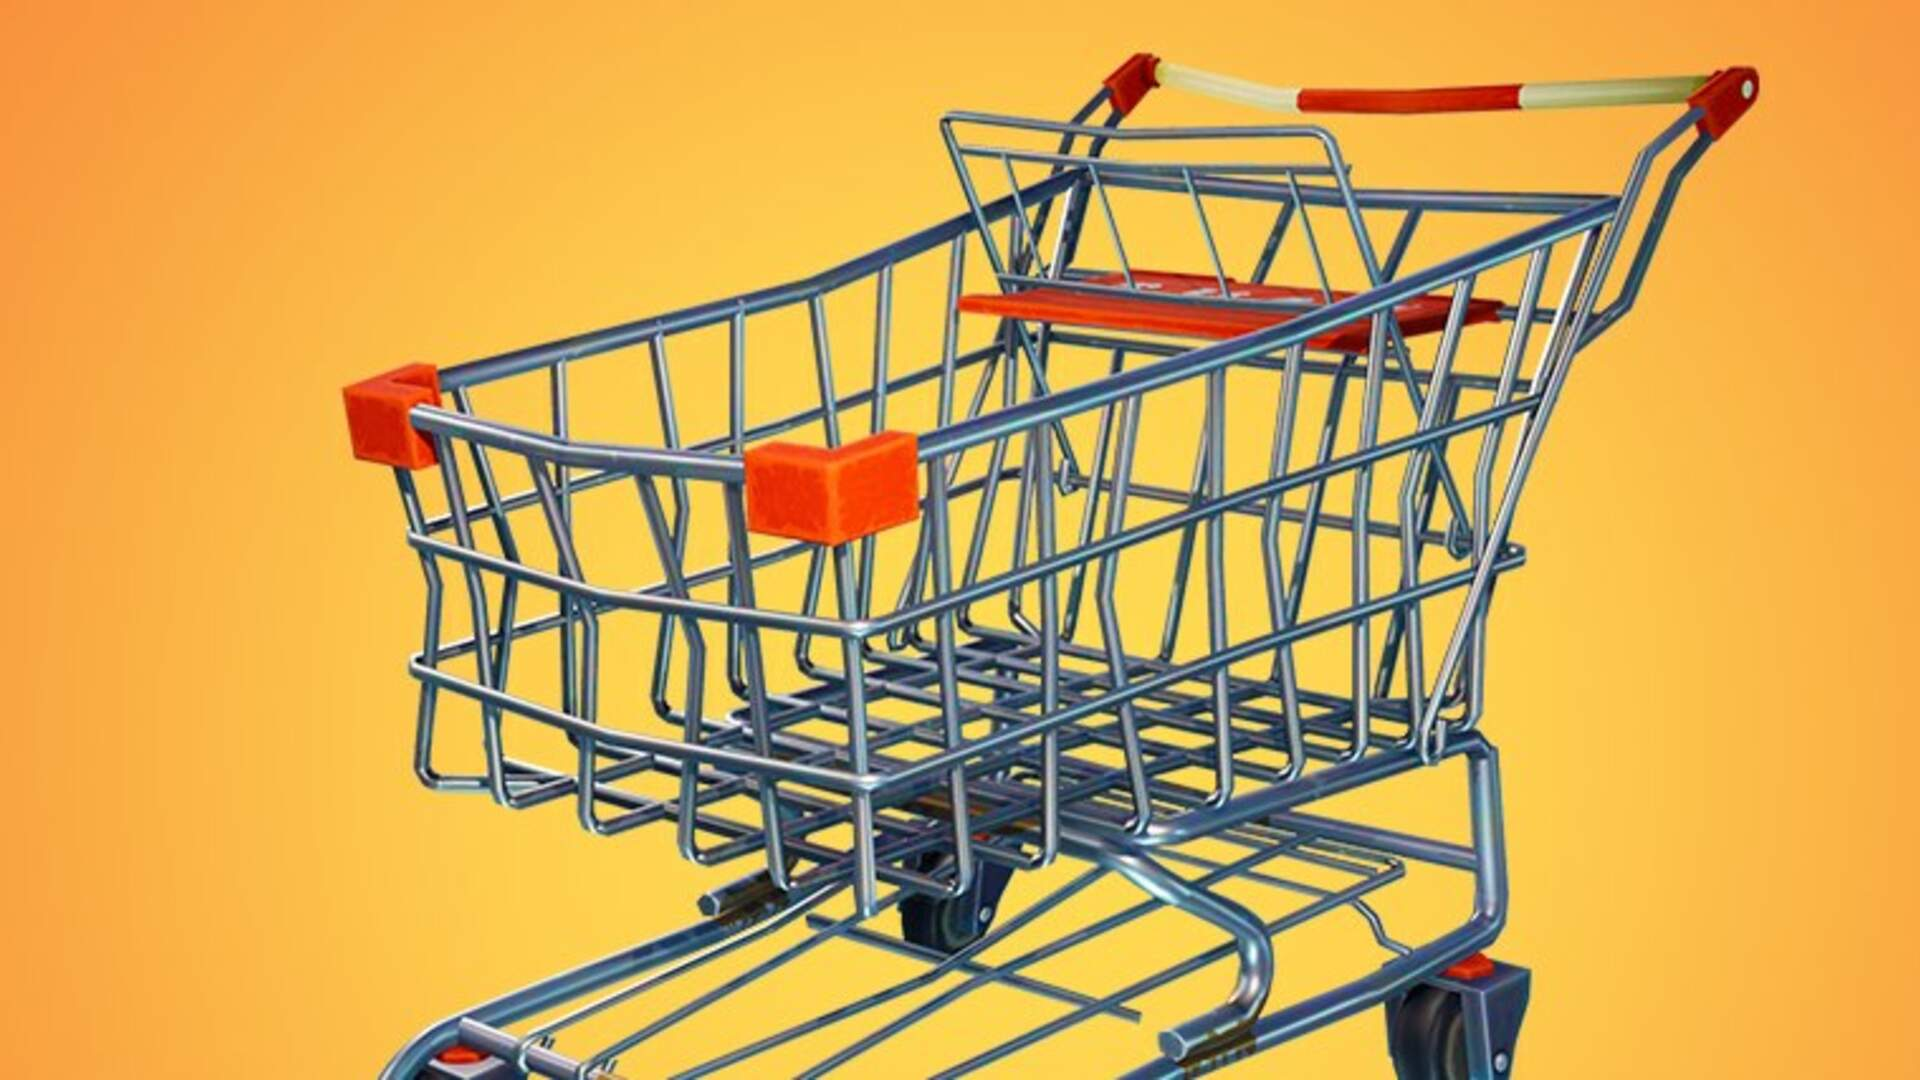 Fortnite Shopping Carts - How to Use the Shopping Cart in Fortnite